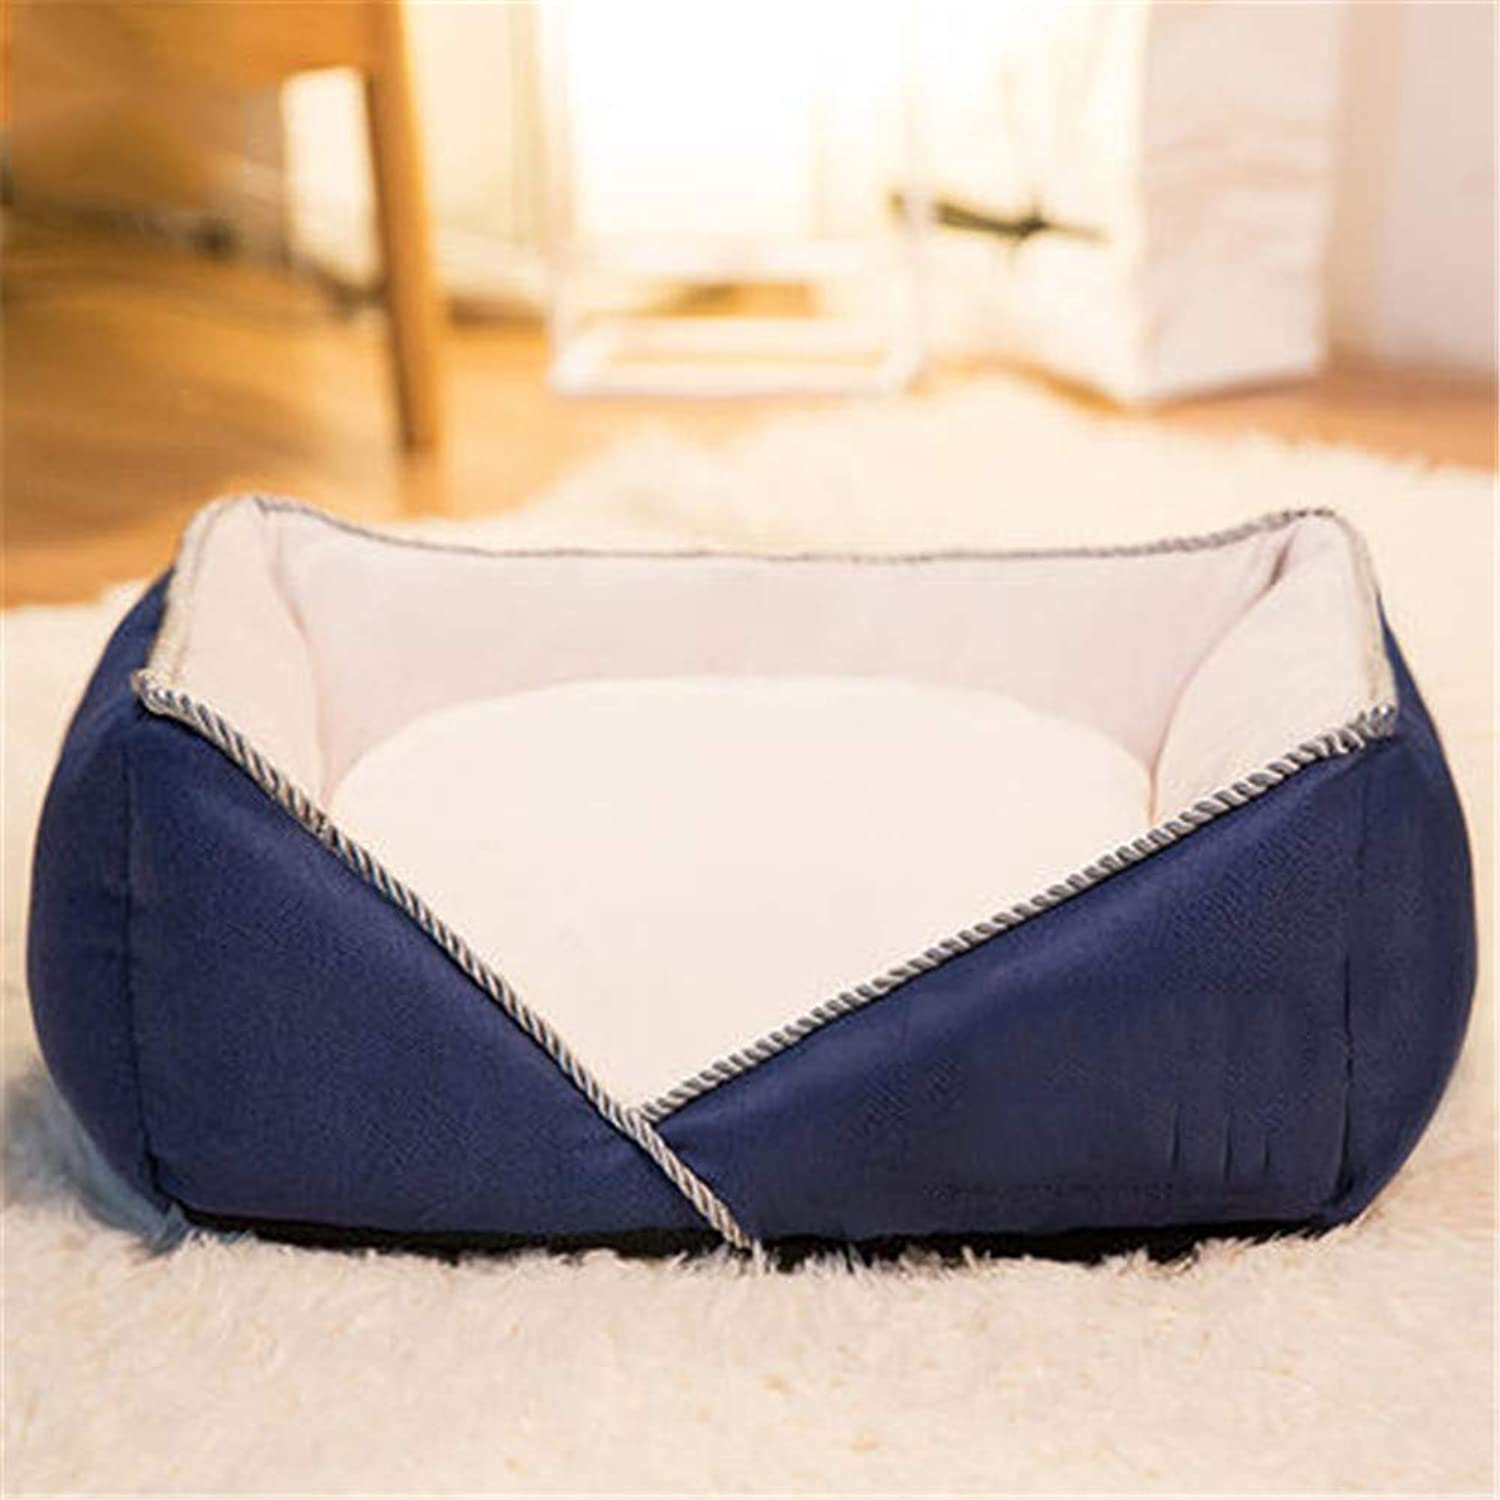 Dog Lounge, Waterproof Liner, YKK Premium Zippers, Breathable Cotton Blend Cover is Easy to Remove & Clean